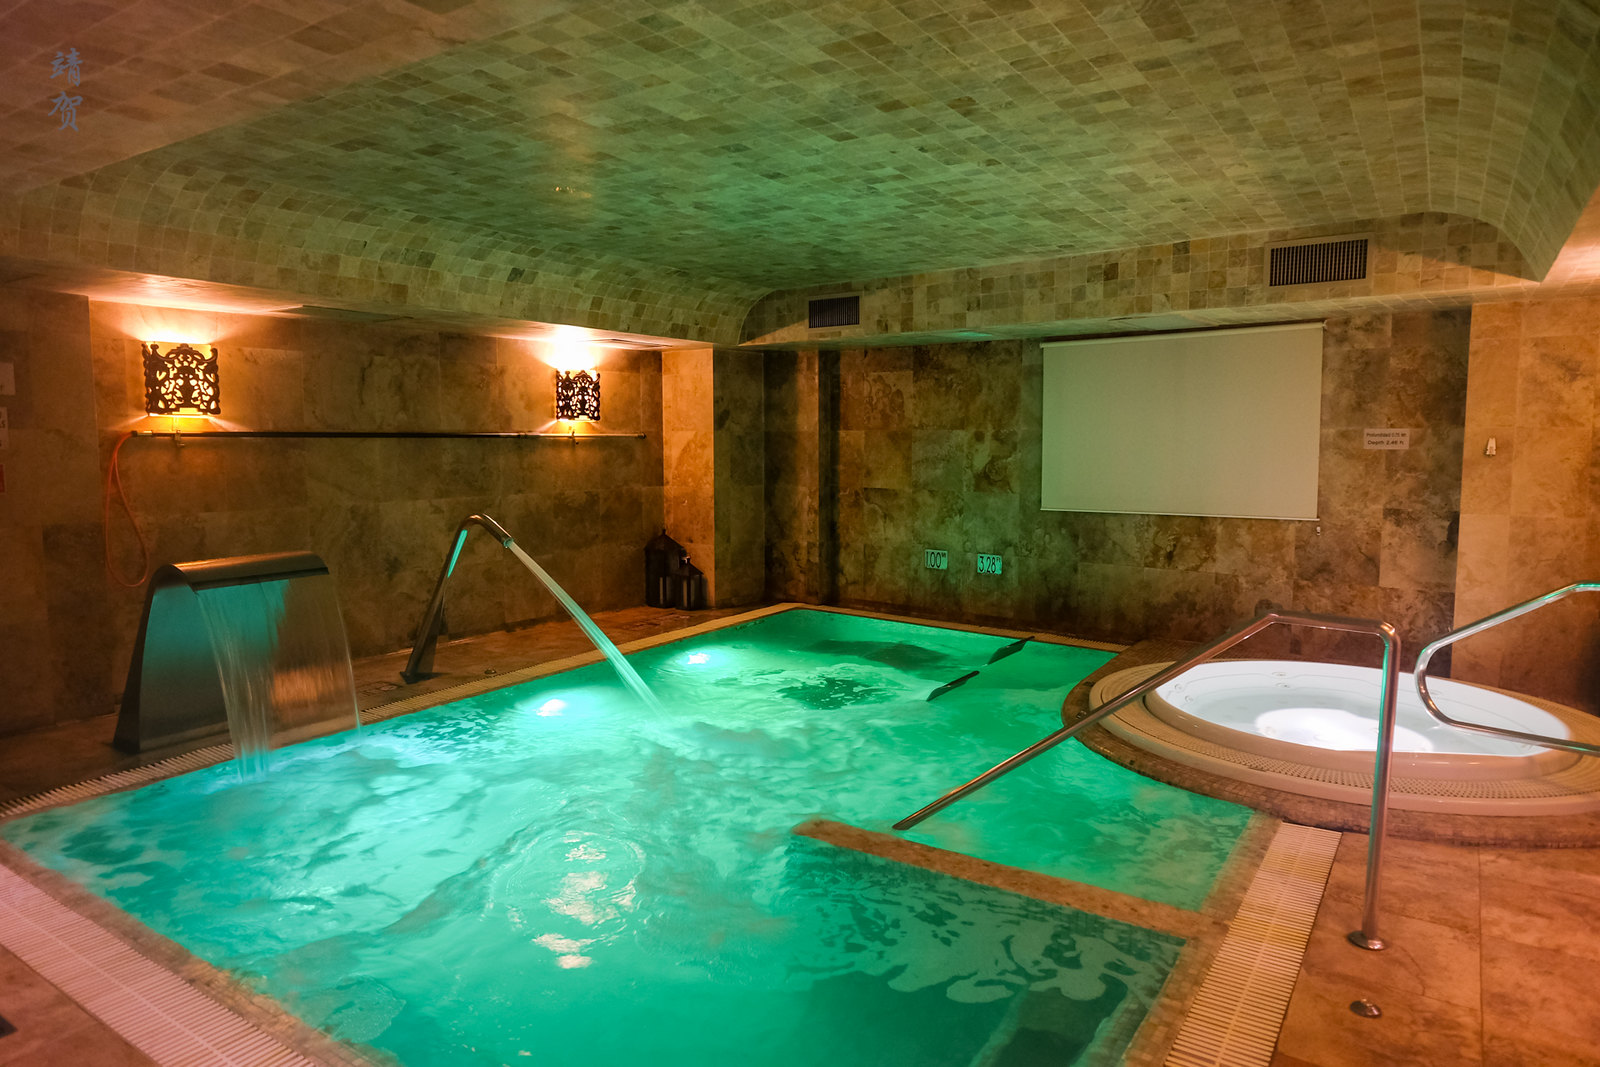 Heated pool in the spa